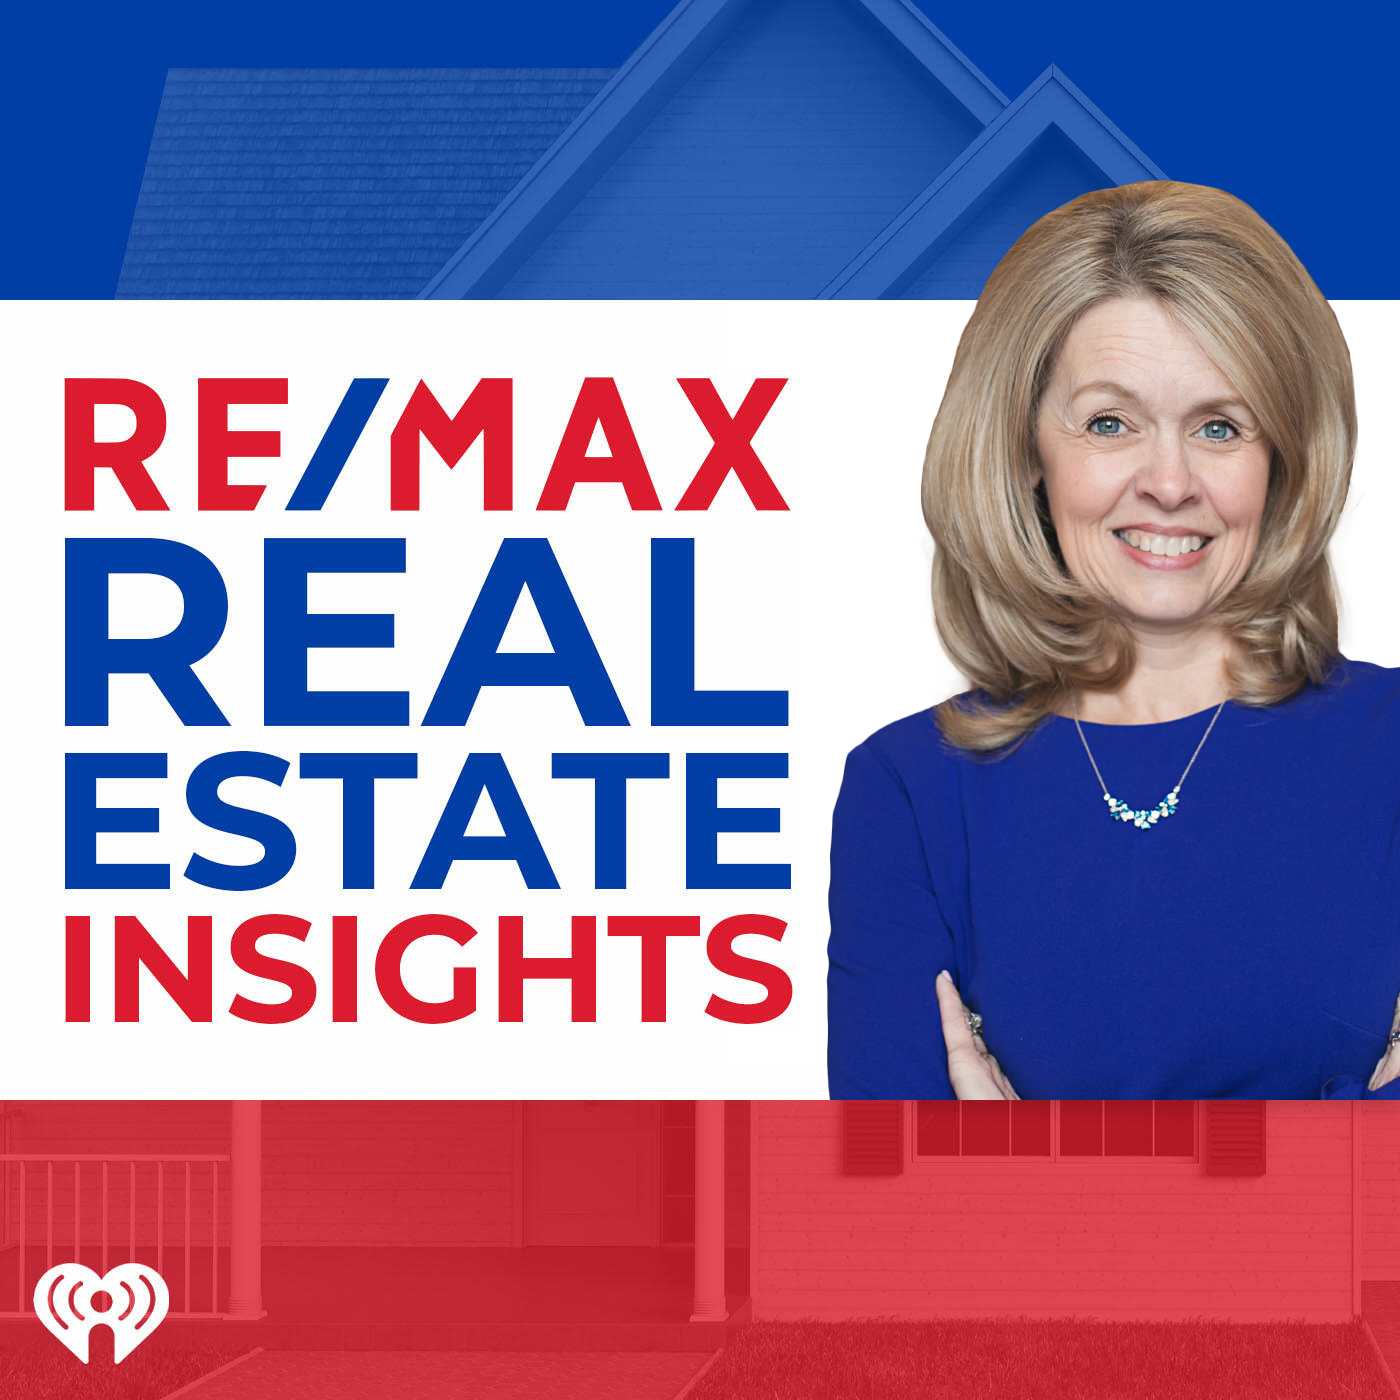 RE/MAX Real Estate Insights